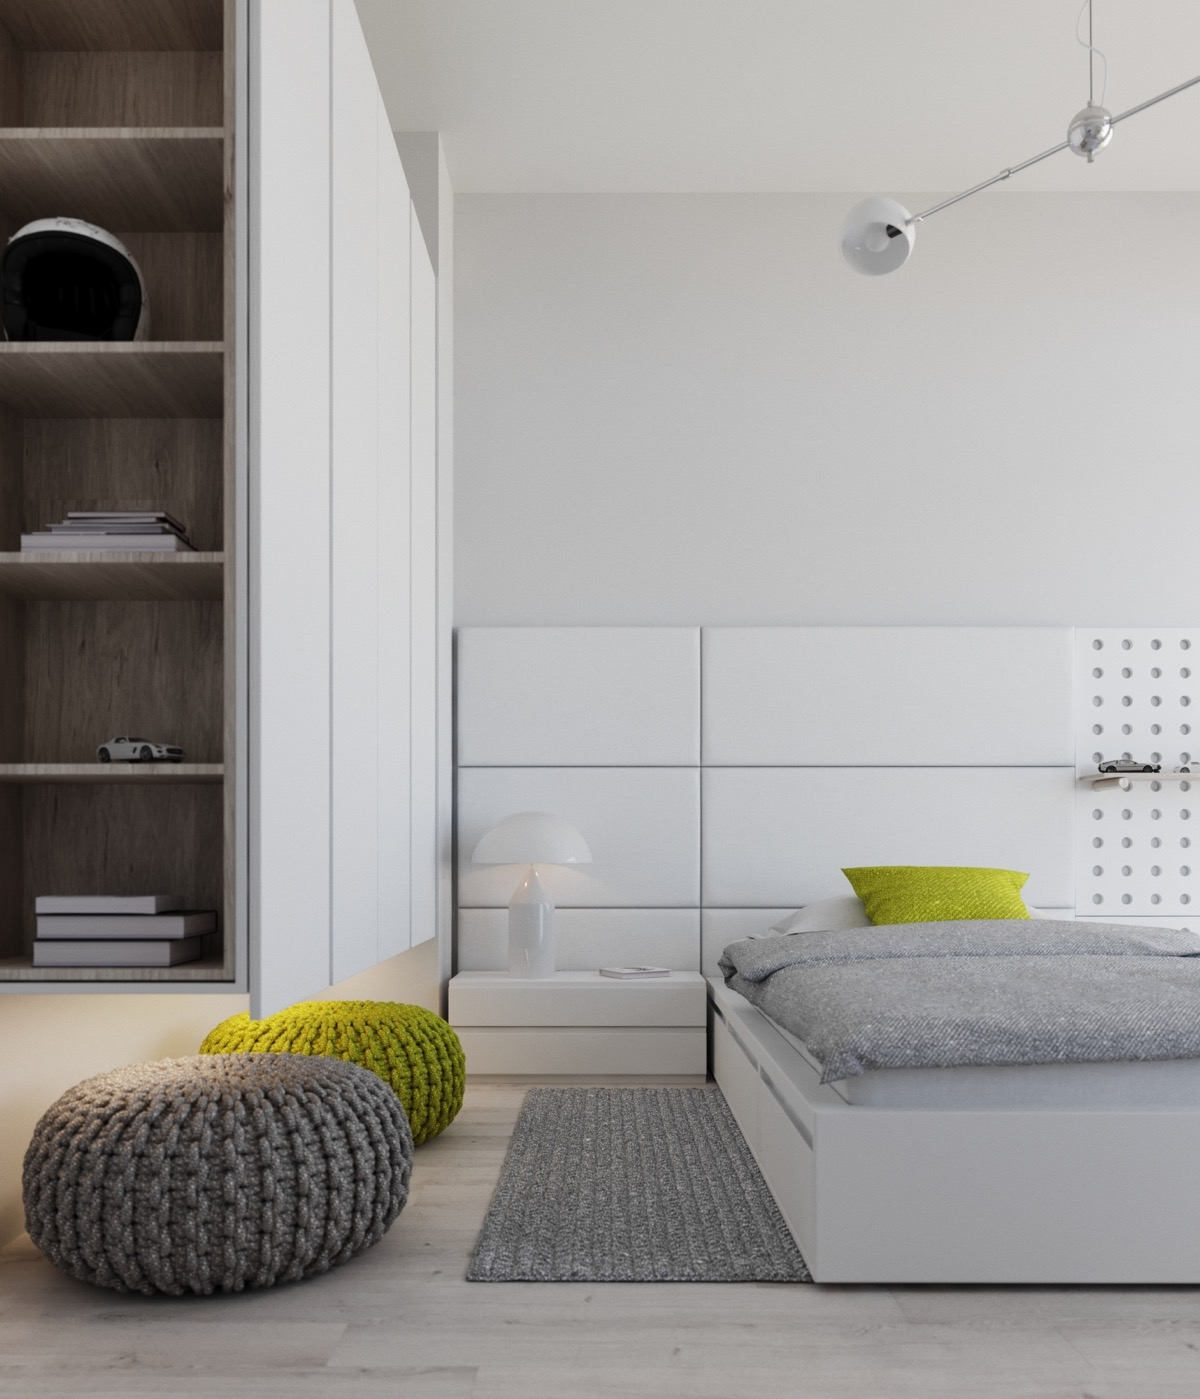 Luxury Kids' Rooms images 24